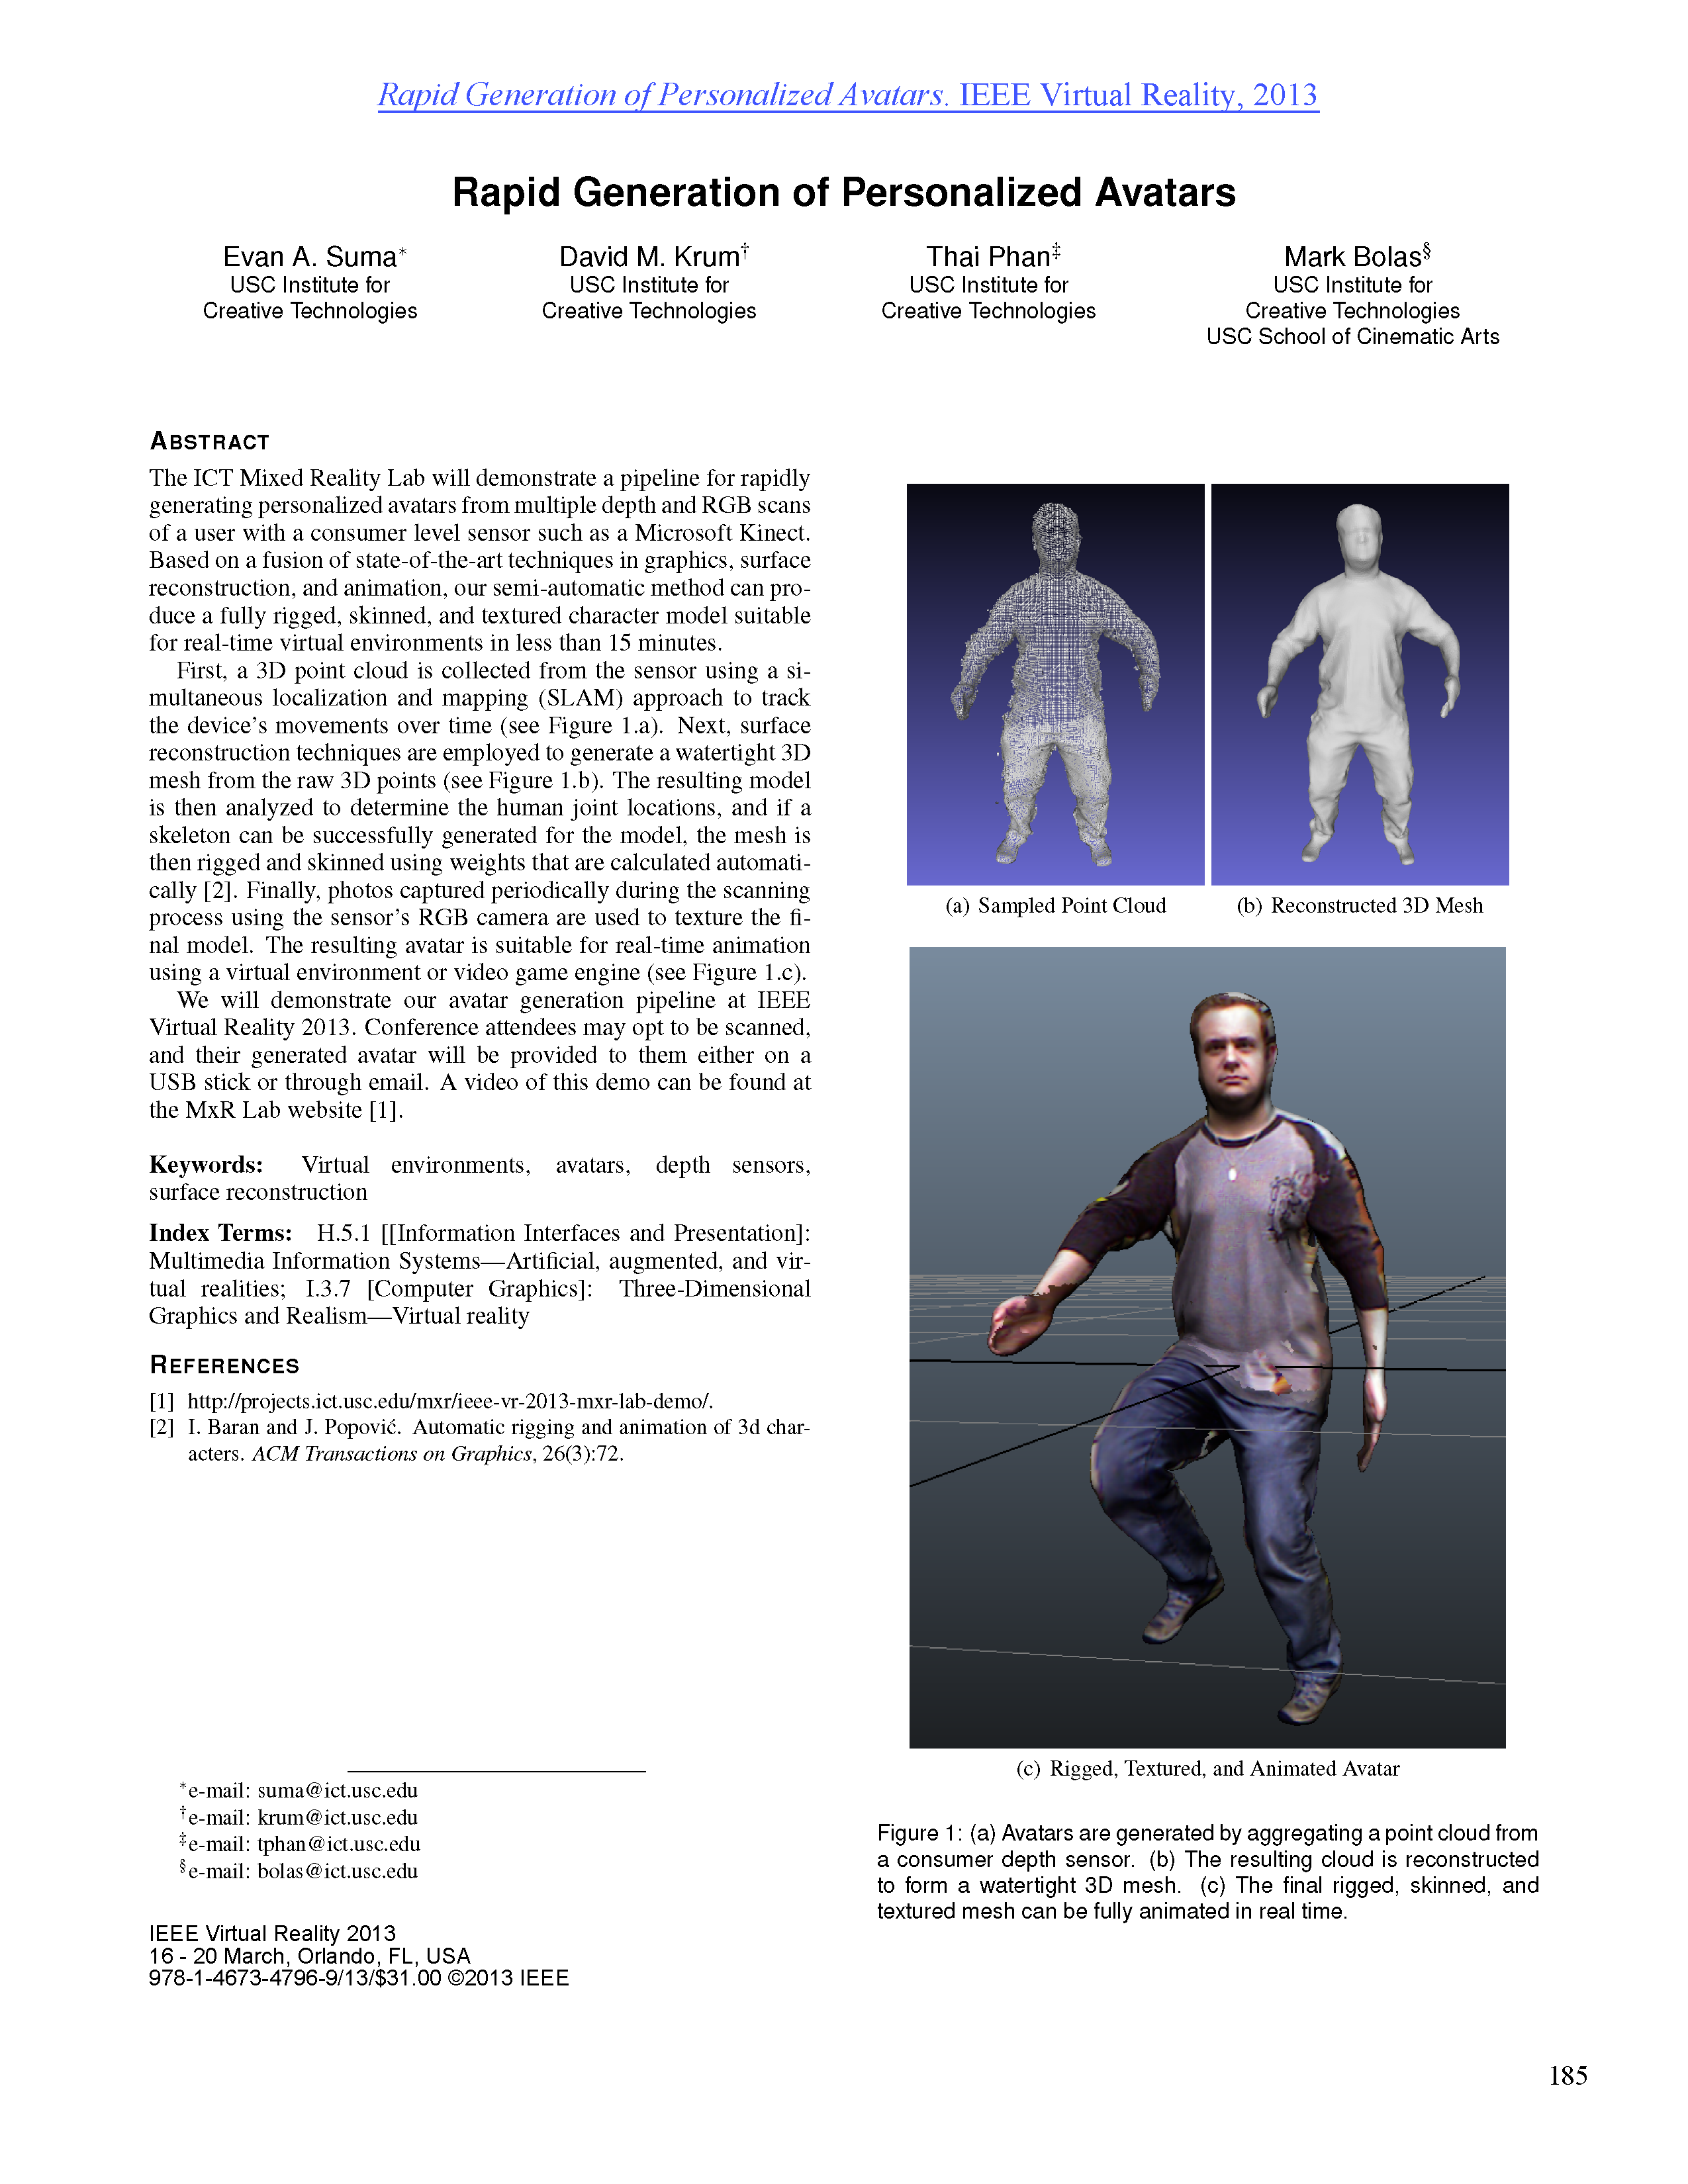 2013- Rapid Generation of Personalized Avatars_demo_TOP SHEET.png